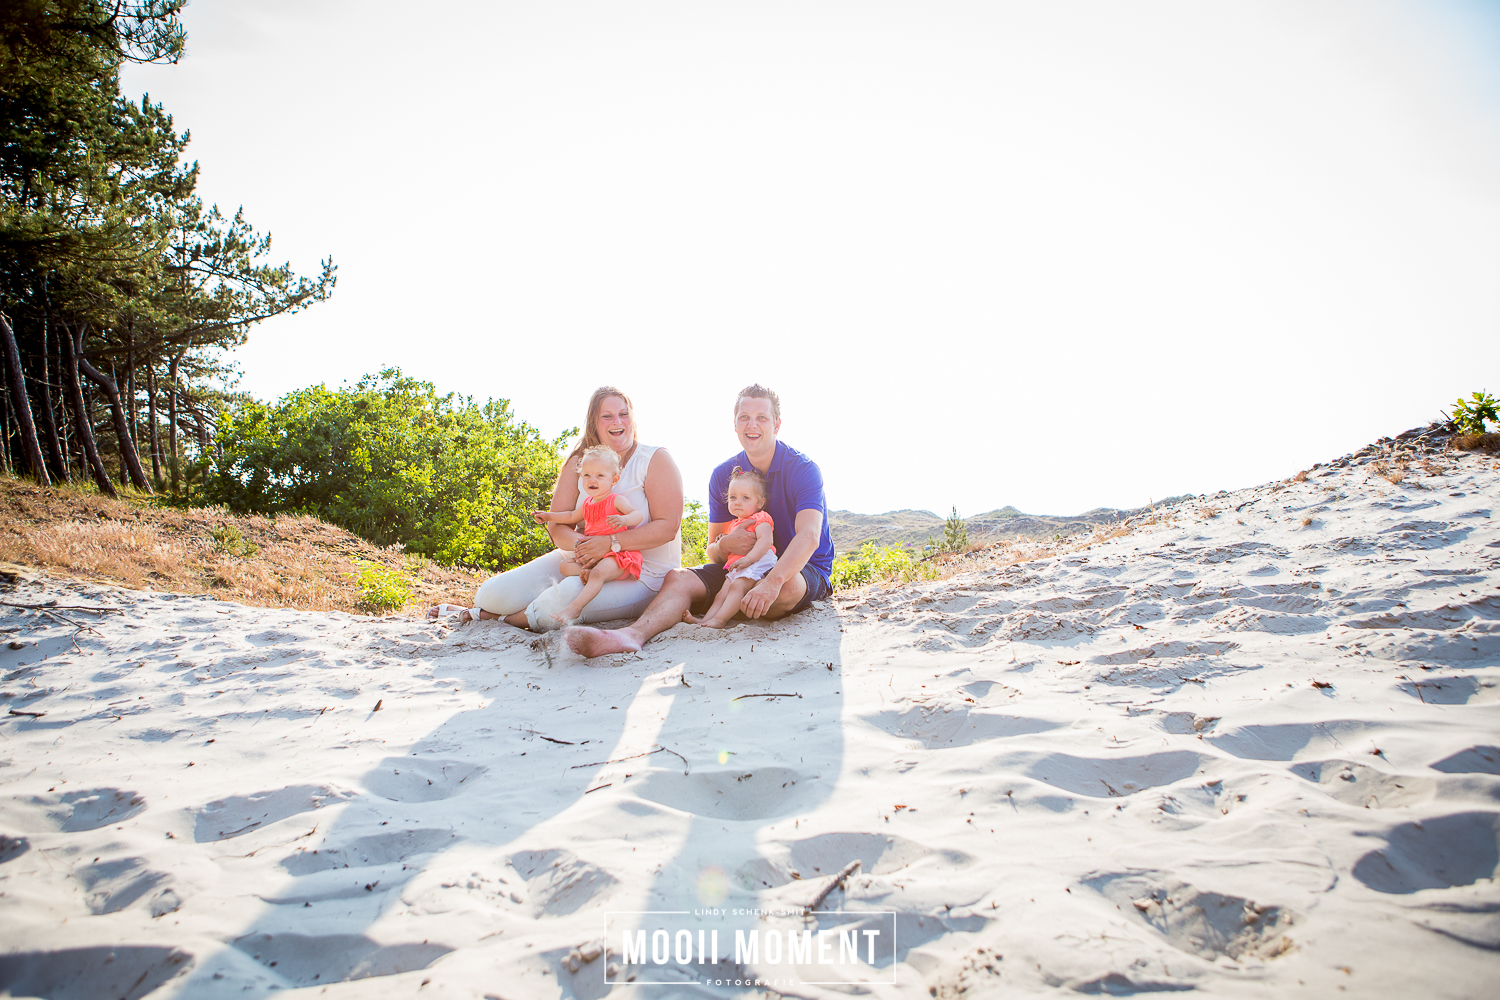 Mooii-Moment-familie-reportage-9.jpg